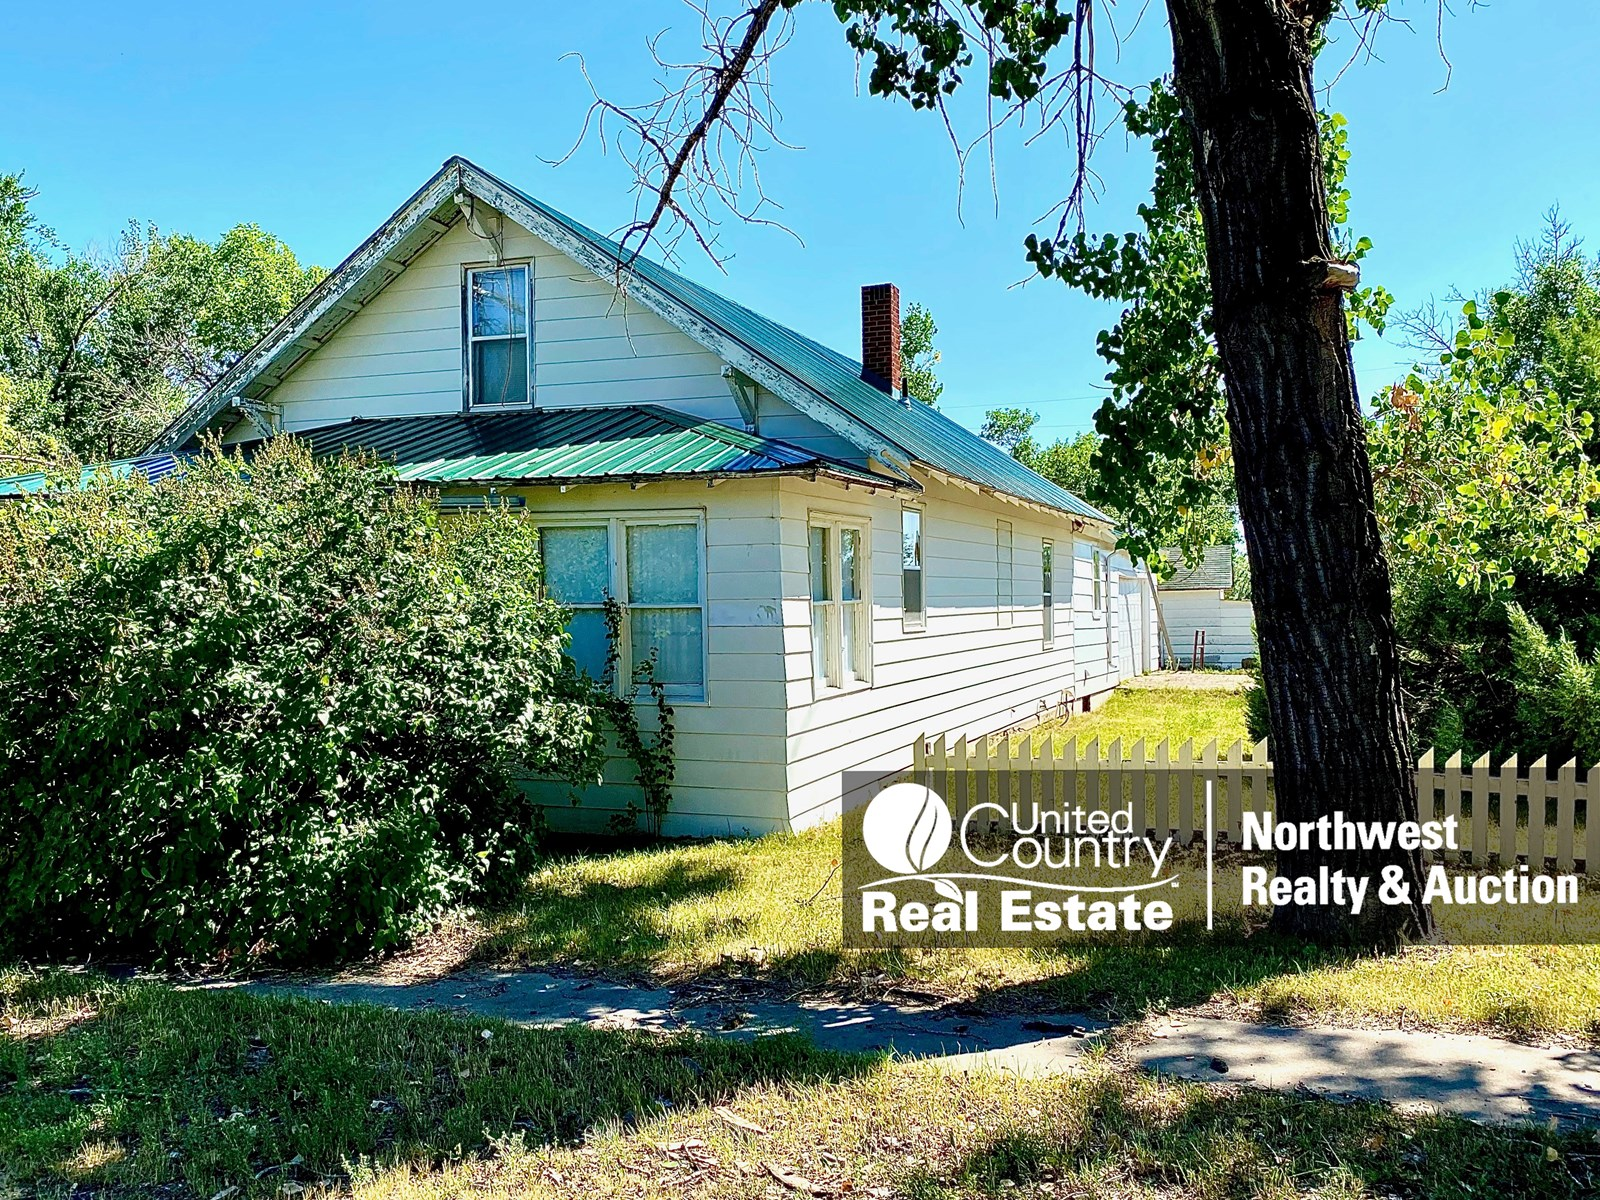 Home in Dodson, MT for Sale with Attached Garage & Updates